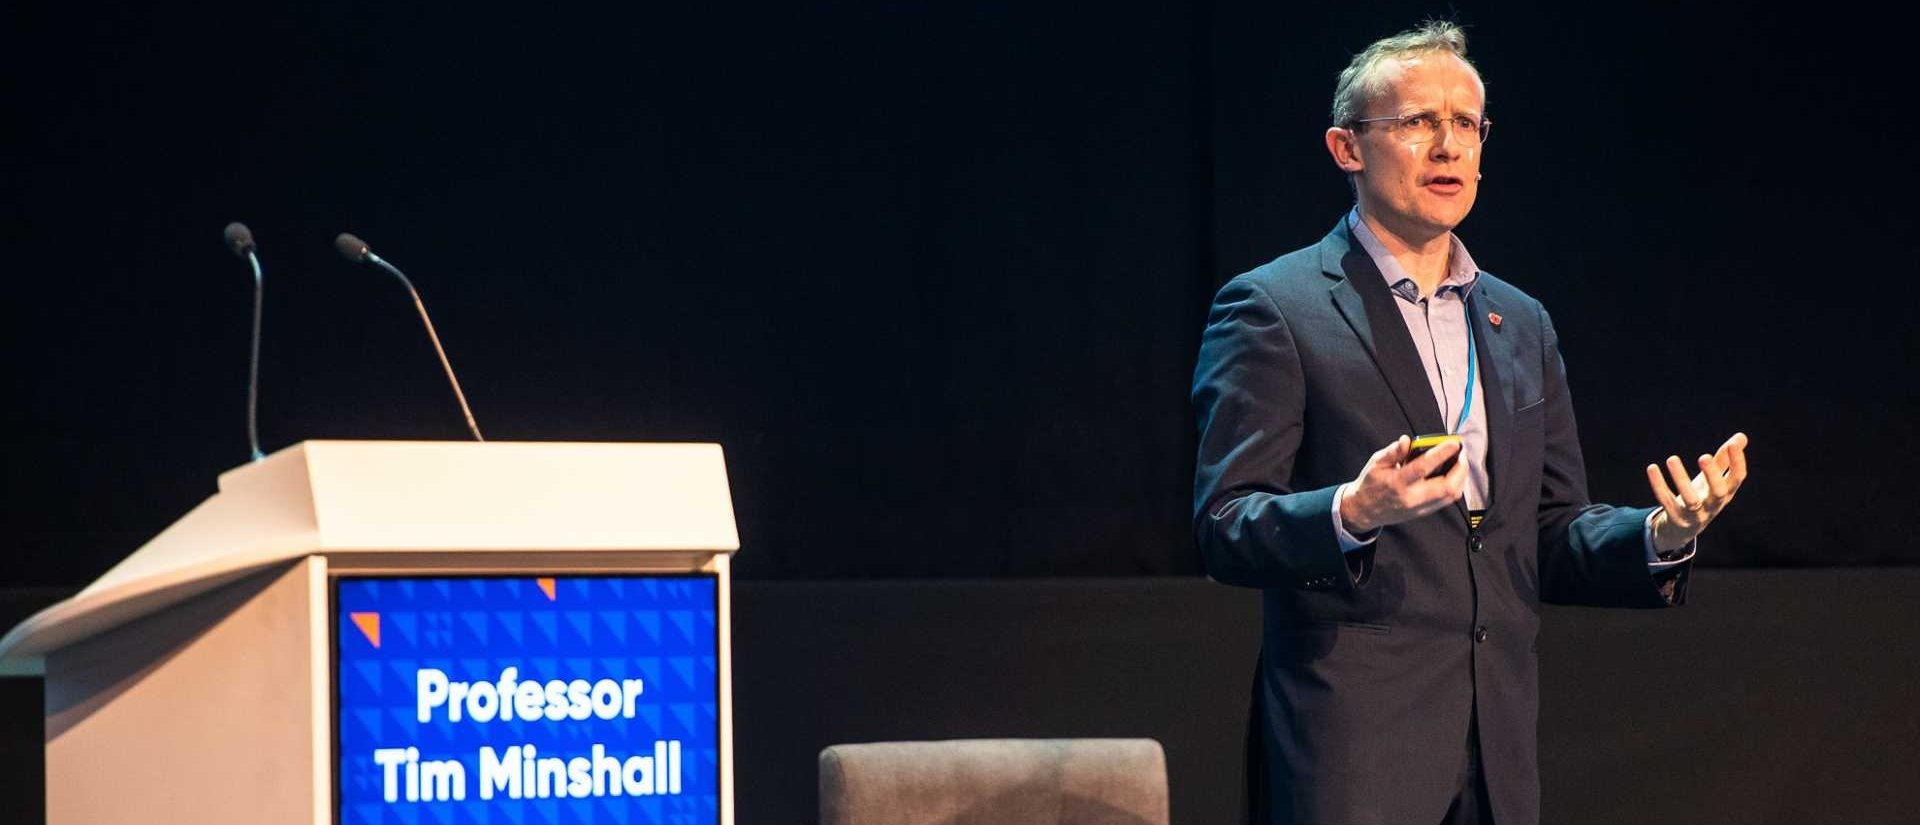 Professor Tim Minshall, Head of the Institute for Manufacturing (IfM), University of Cambridge too to the main stage at Manufacturing Leaders' Summit 2019 - image courtesy of The Manufacturer